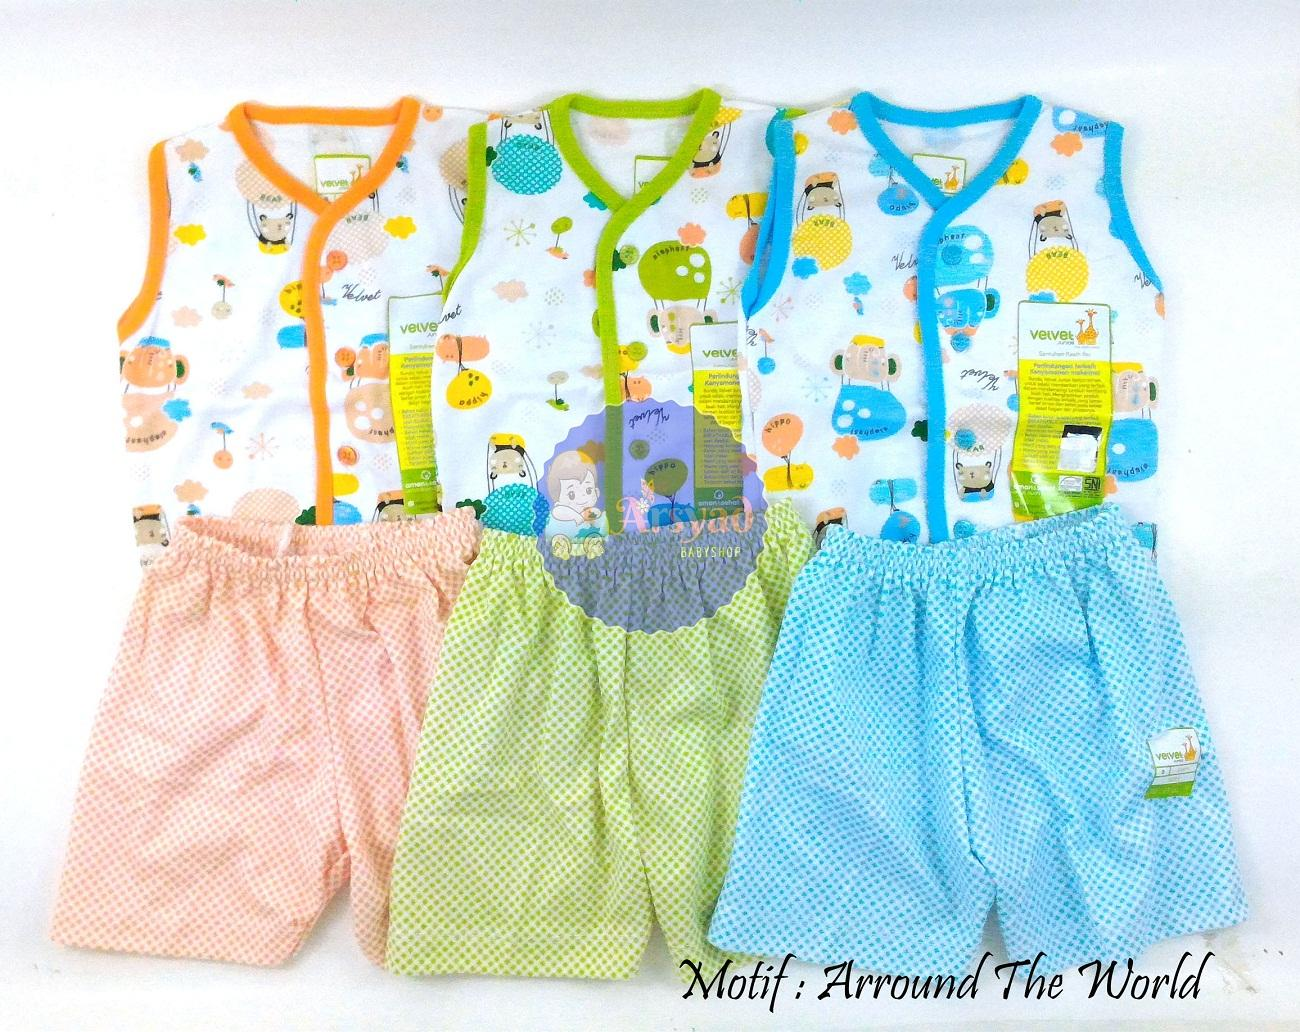 Arsyad Babyshop - Velvet Junior Paket 3 Pcs Baju Anak Setelan Kutung - Motif Arround The World